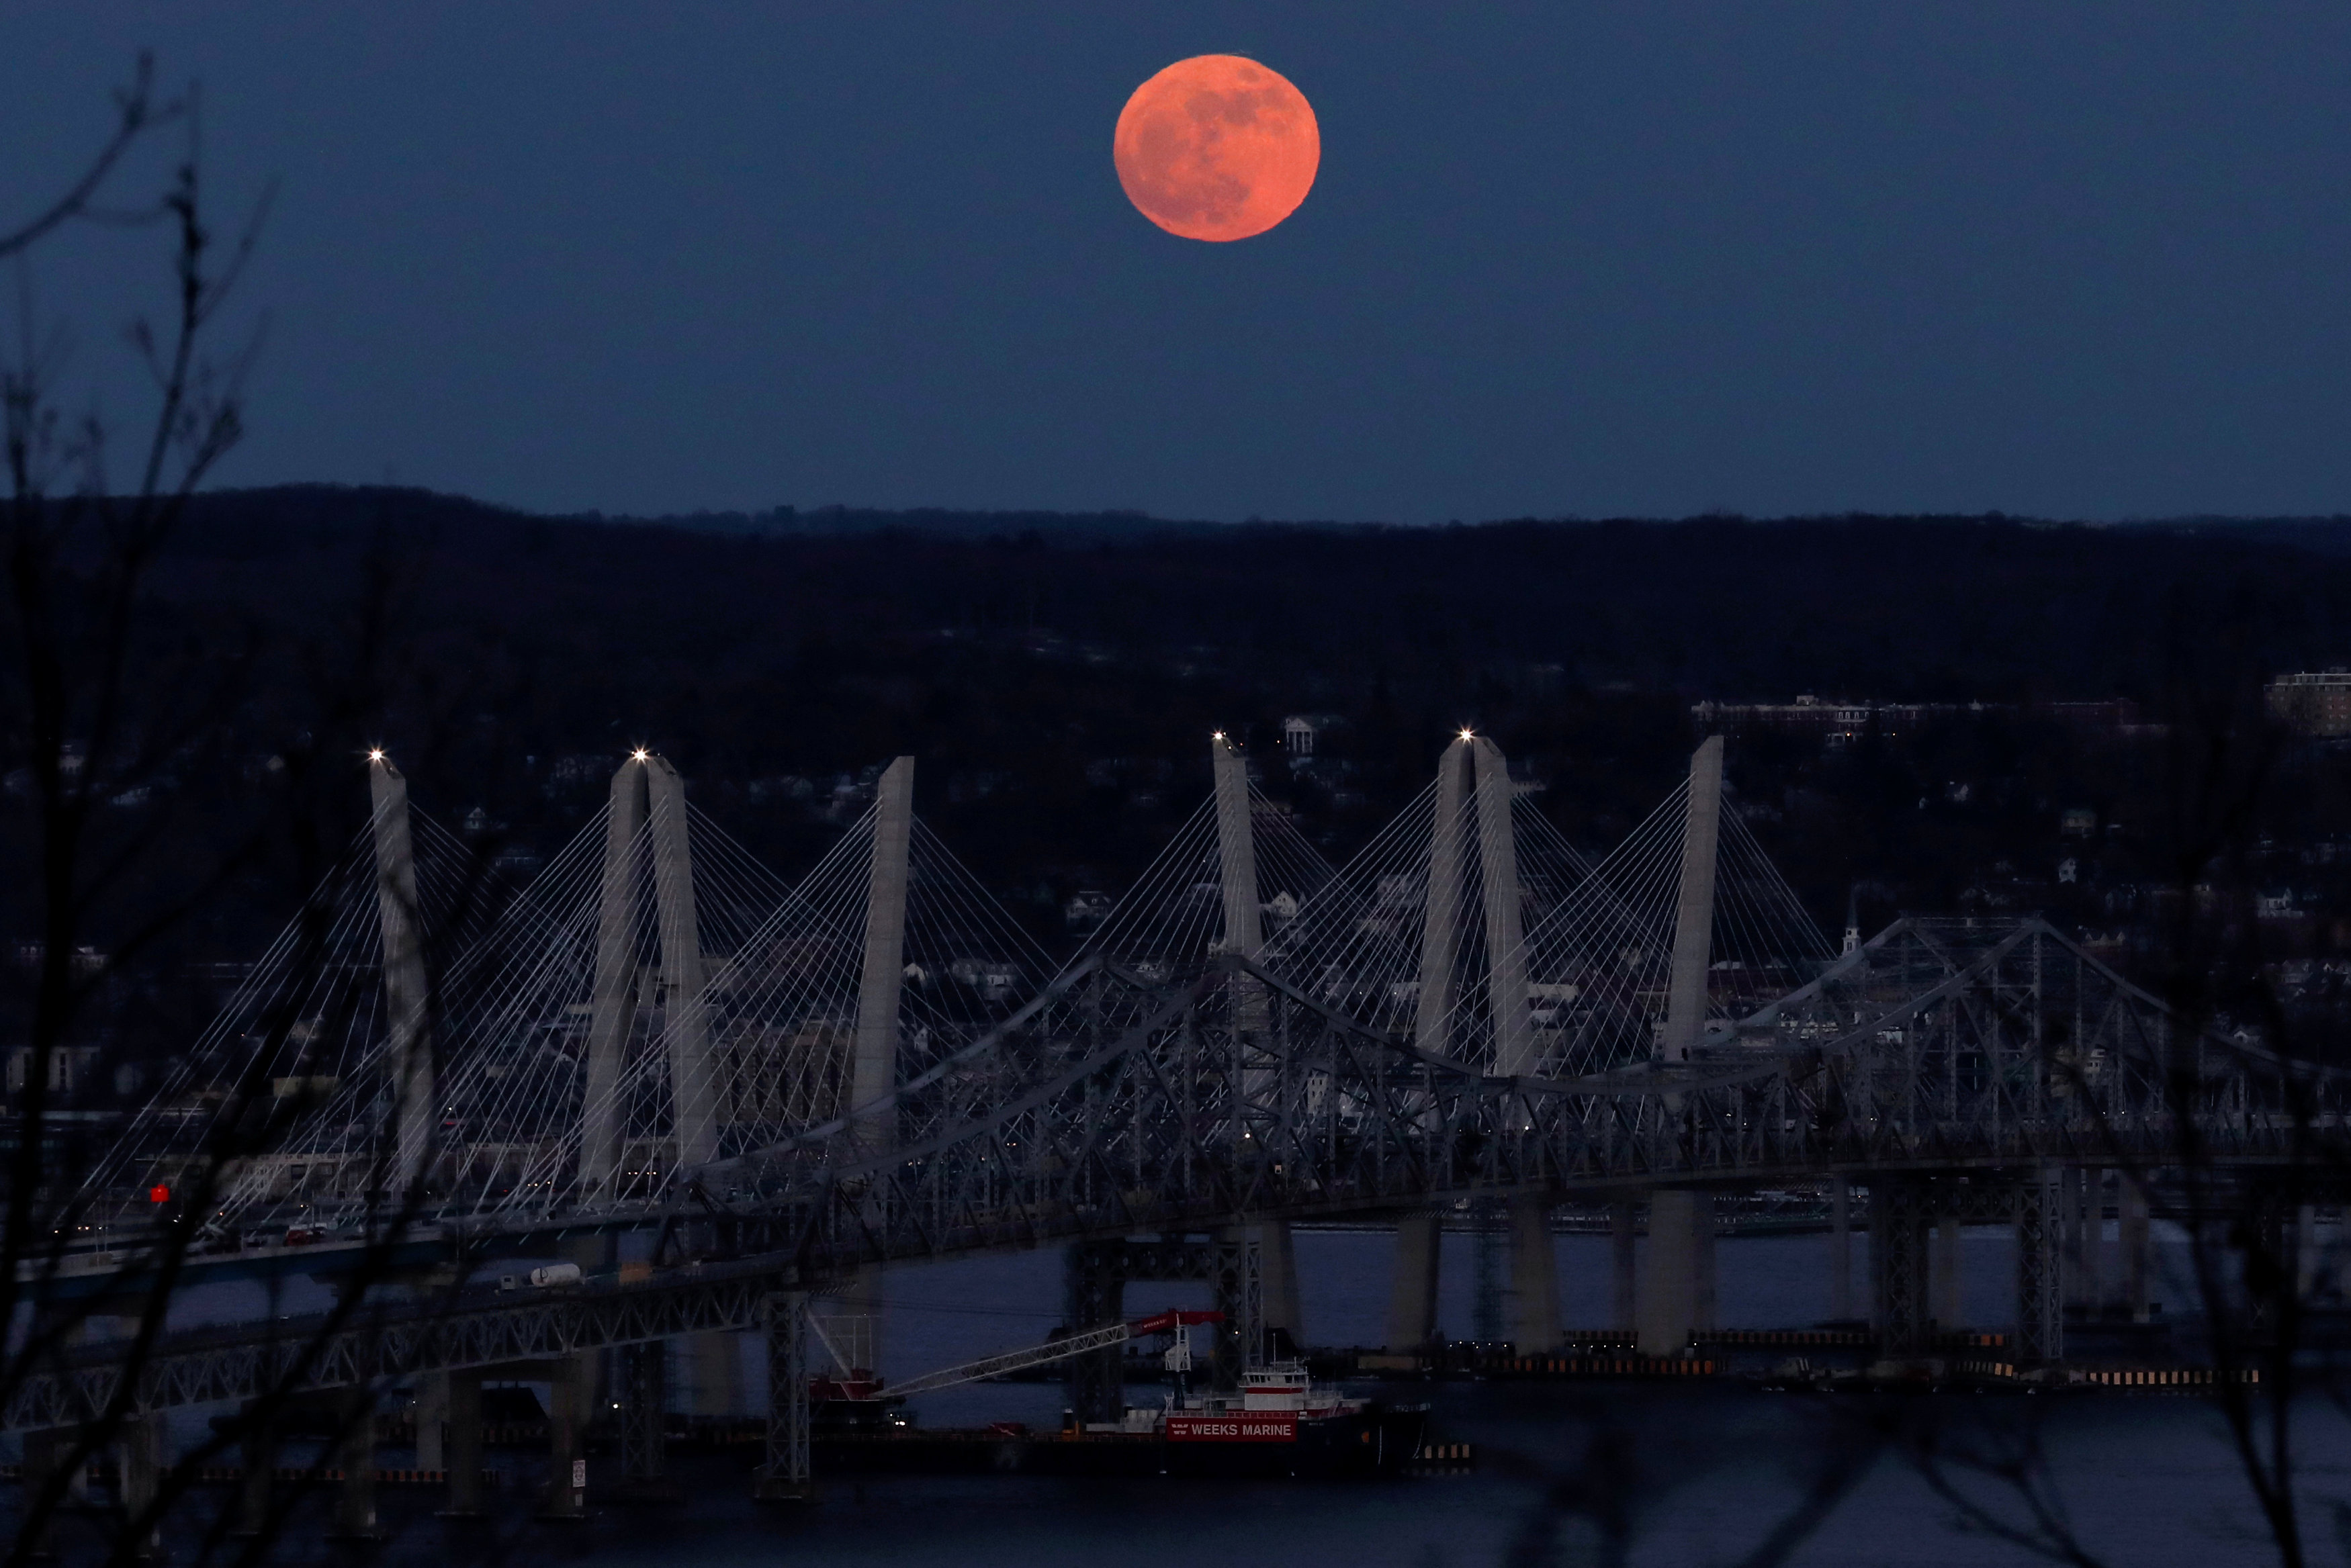 A 'supermoon' full moon is seen above the Hudson River and the Mario M. Cuomo Bridge from Nyac